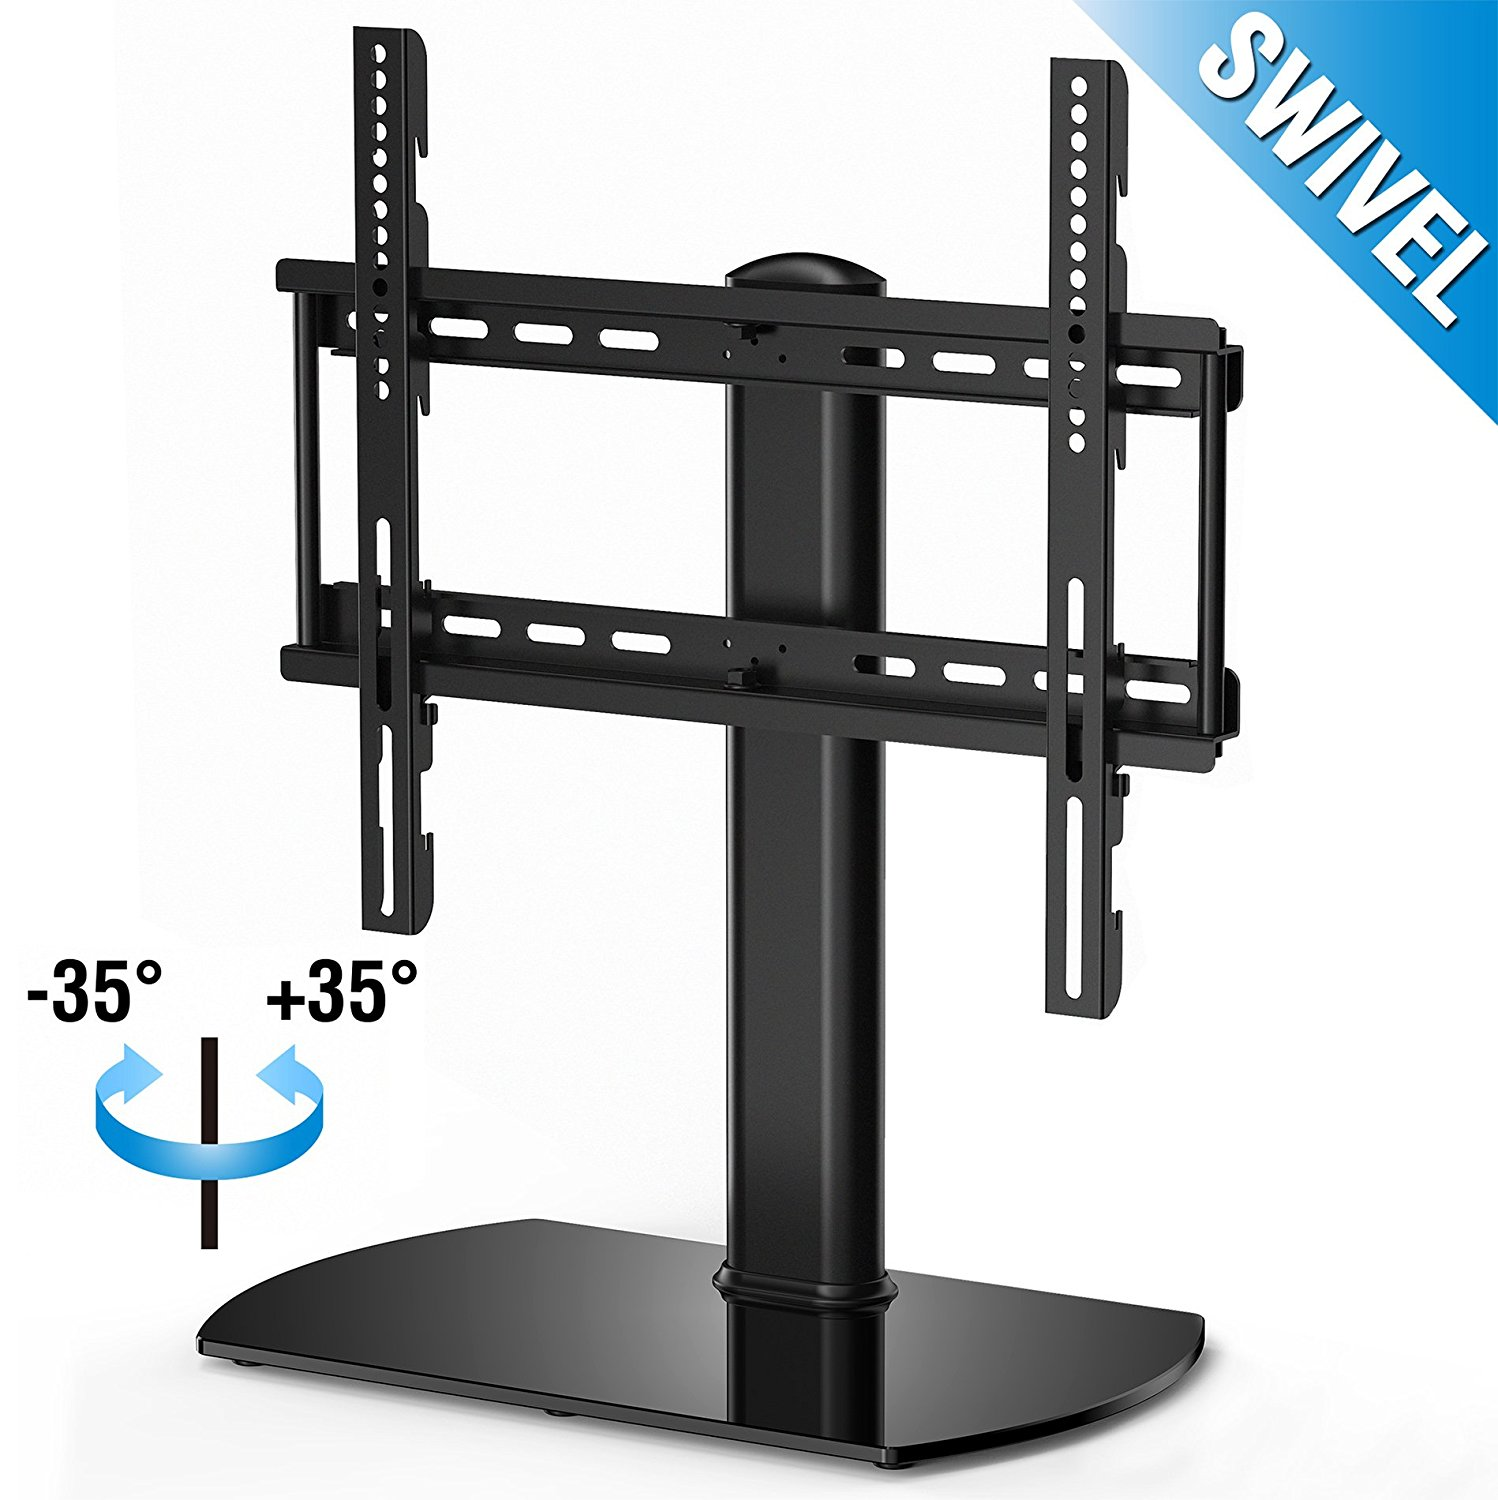 FITUEYES Swivel TV Stand with mount for up to 50 inch Samsung Vizio LED LCD Flat screen Tvs FTT104501GB